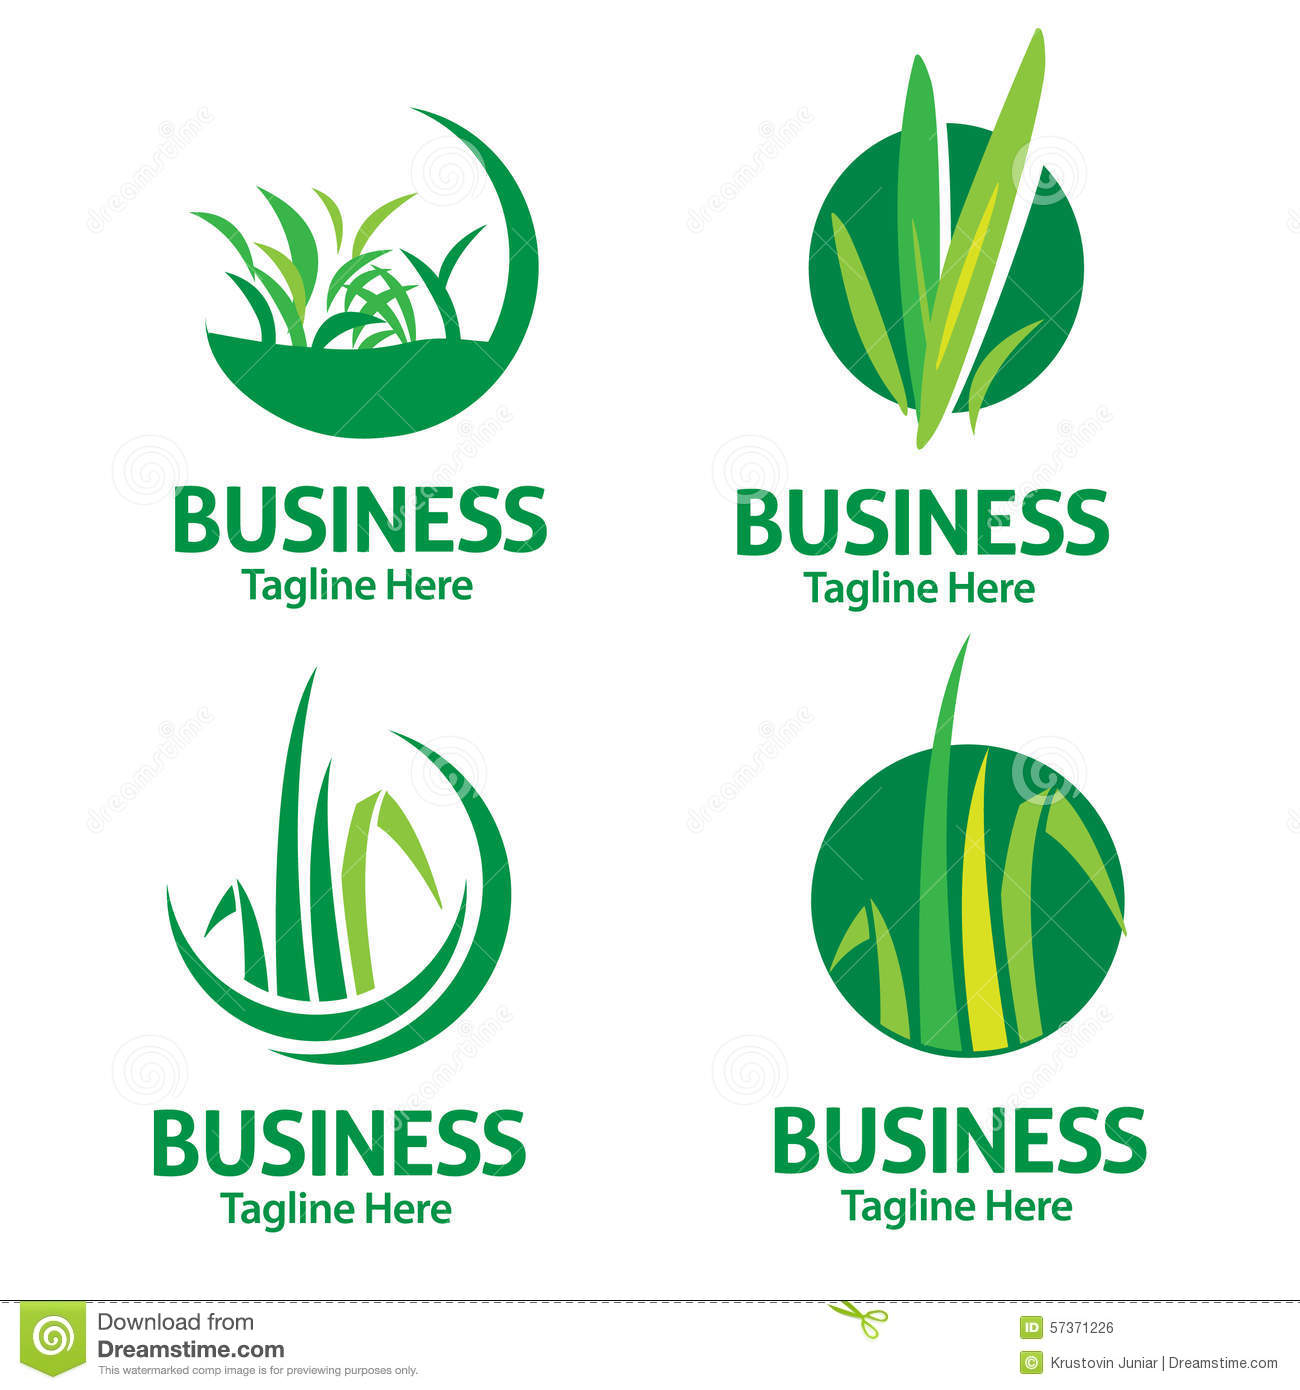 17 lawn care logo vector images lawn care logos clip art lawn mowing logos and lawn care for Lawn care vector